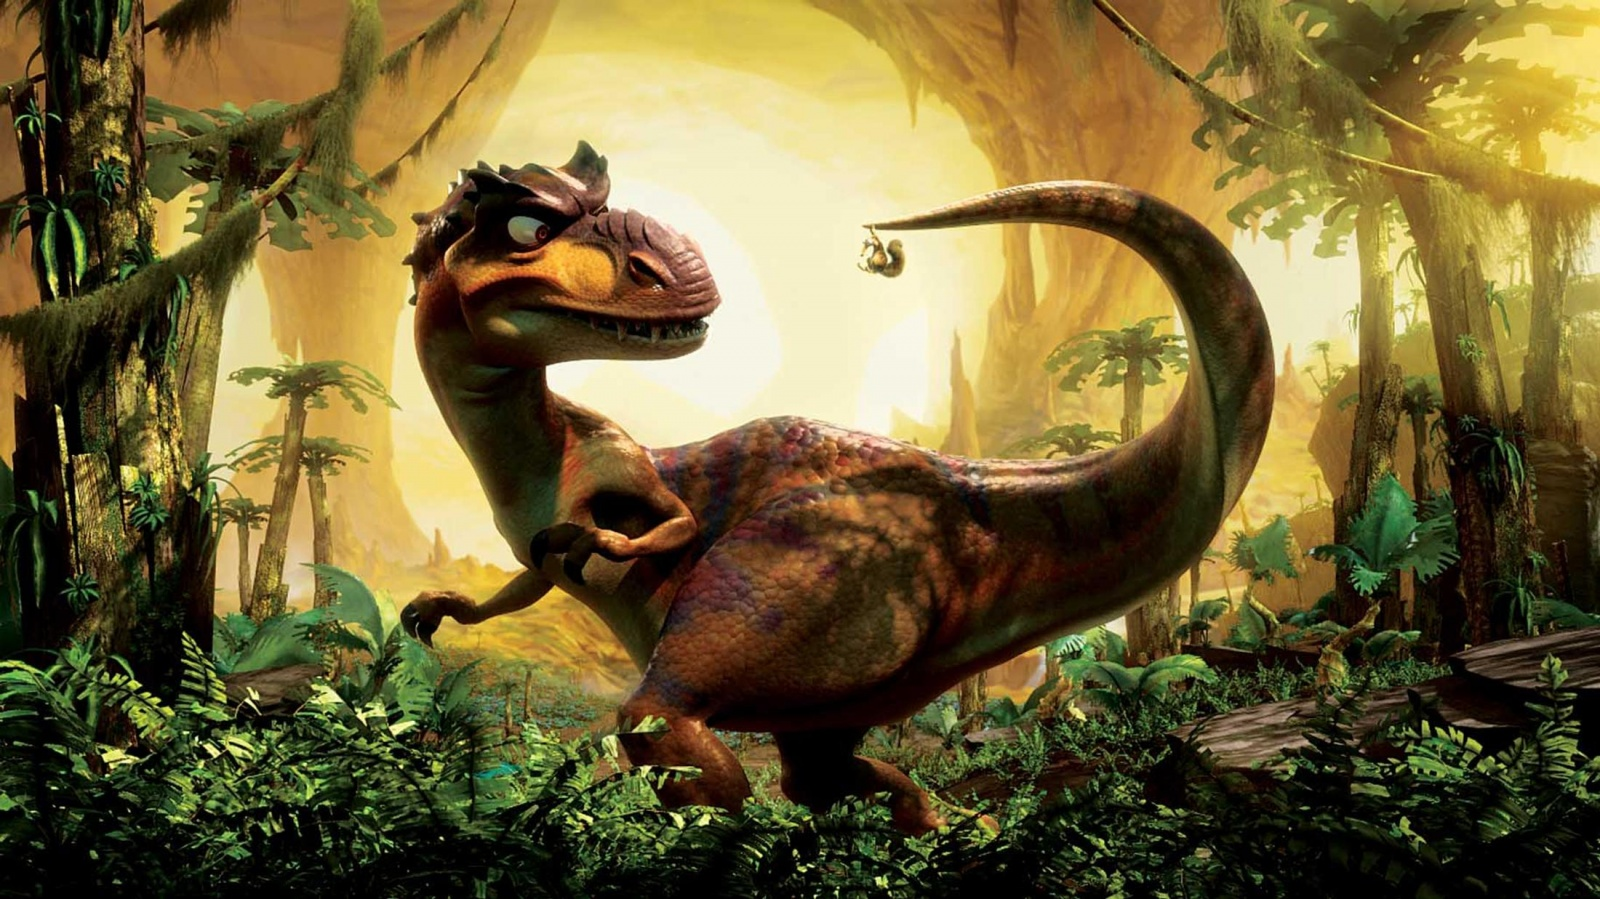 Dinosaur Wallpapers  Android Apps on Google Play 1600x899